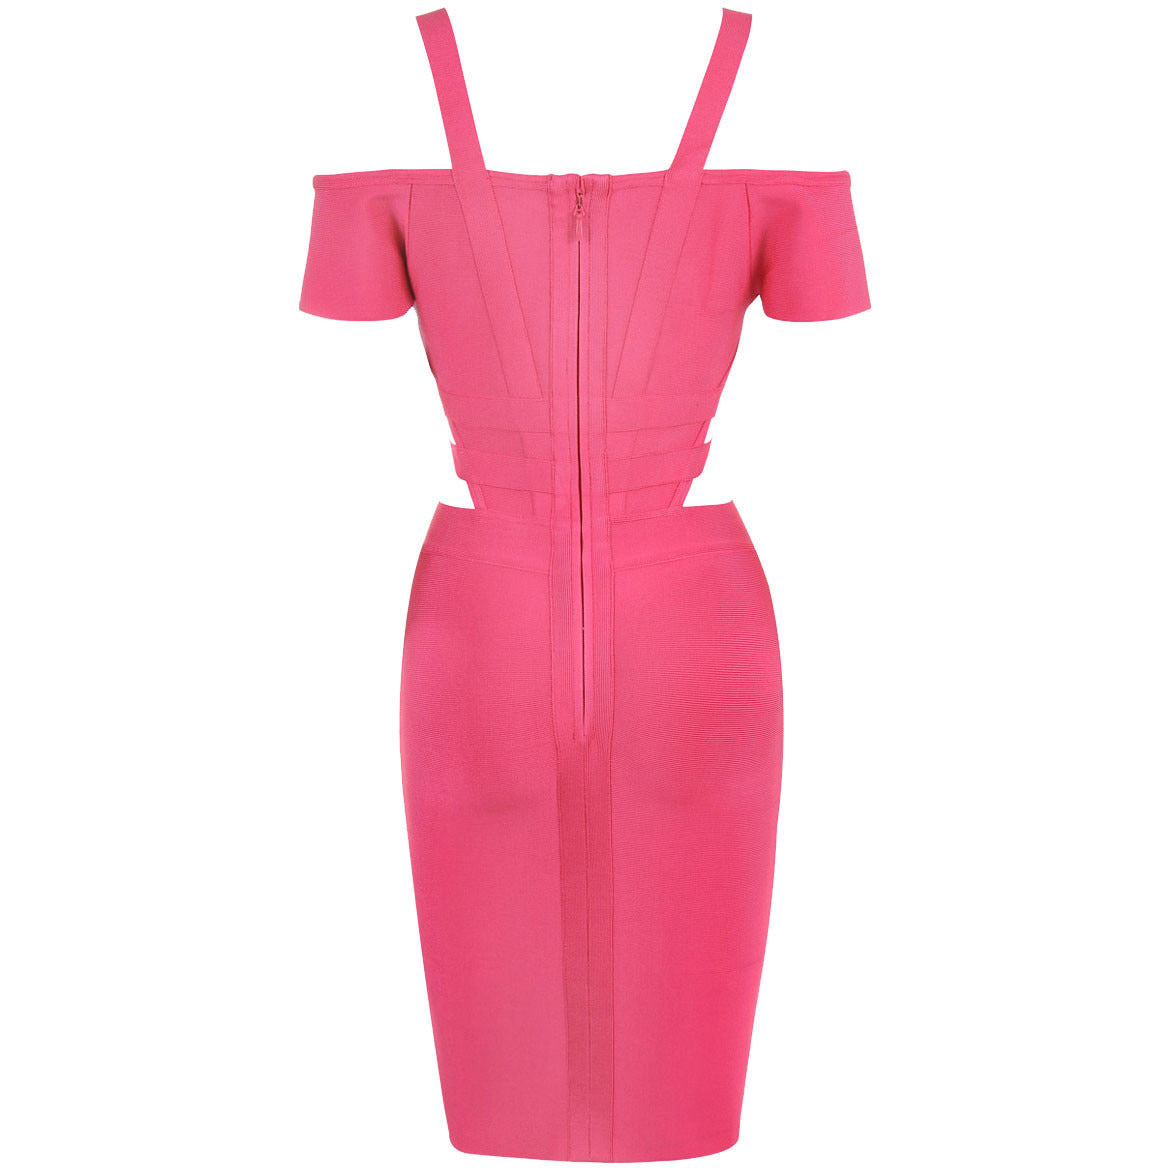 Off Shoulder Cut Out Bandage Dress LAVELIQ SALE - LAVELIQ - 7